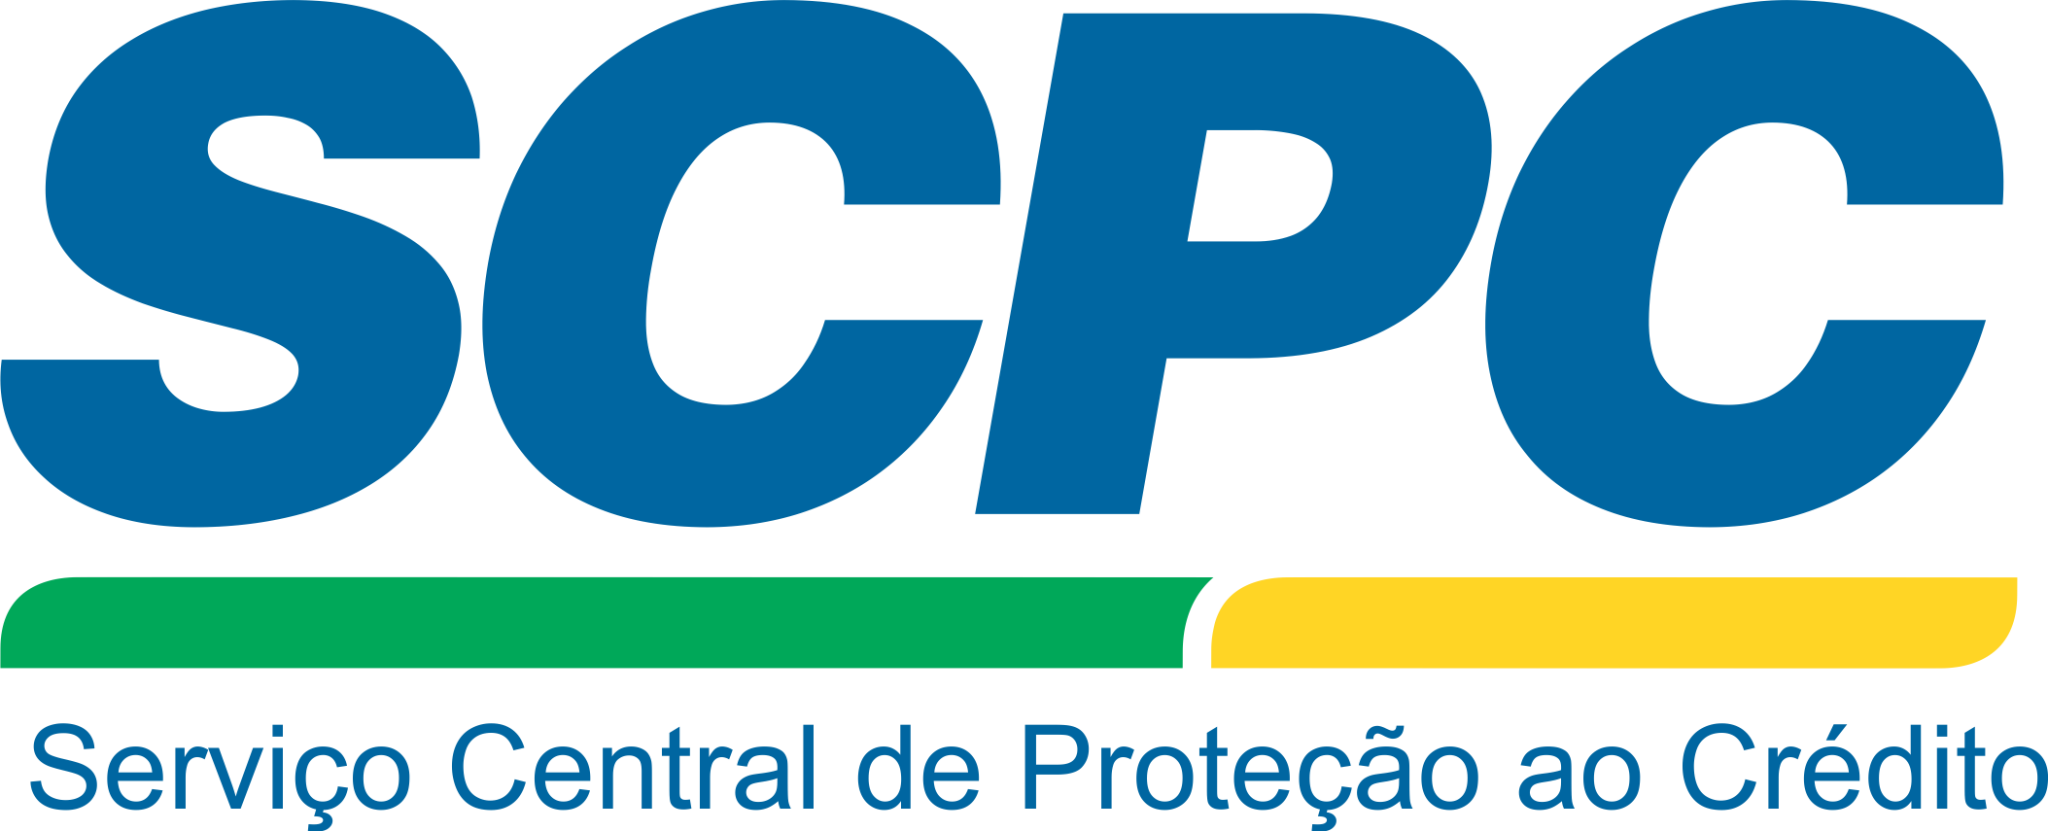 2LOGO-SCPC-png-1